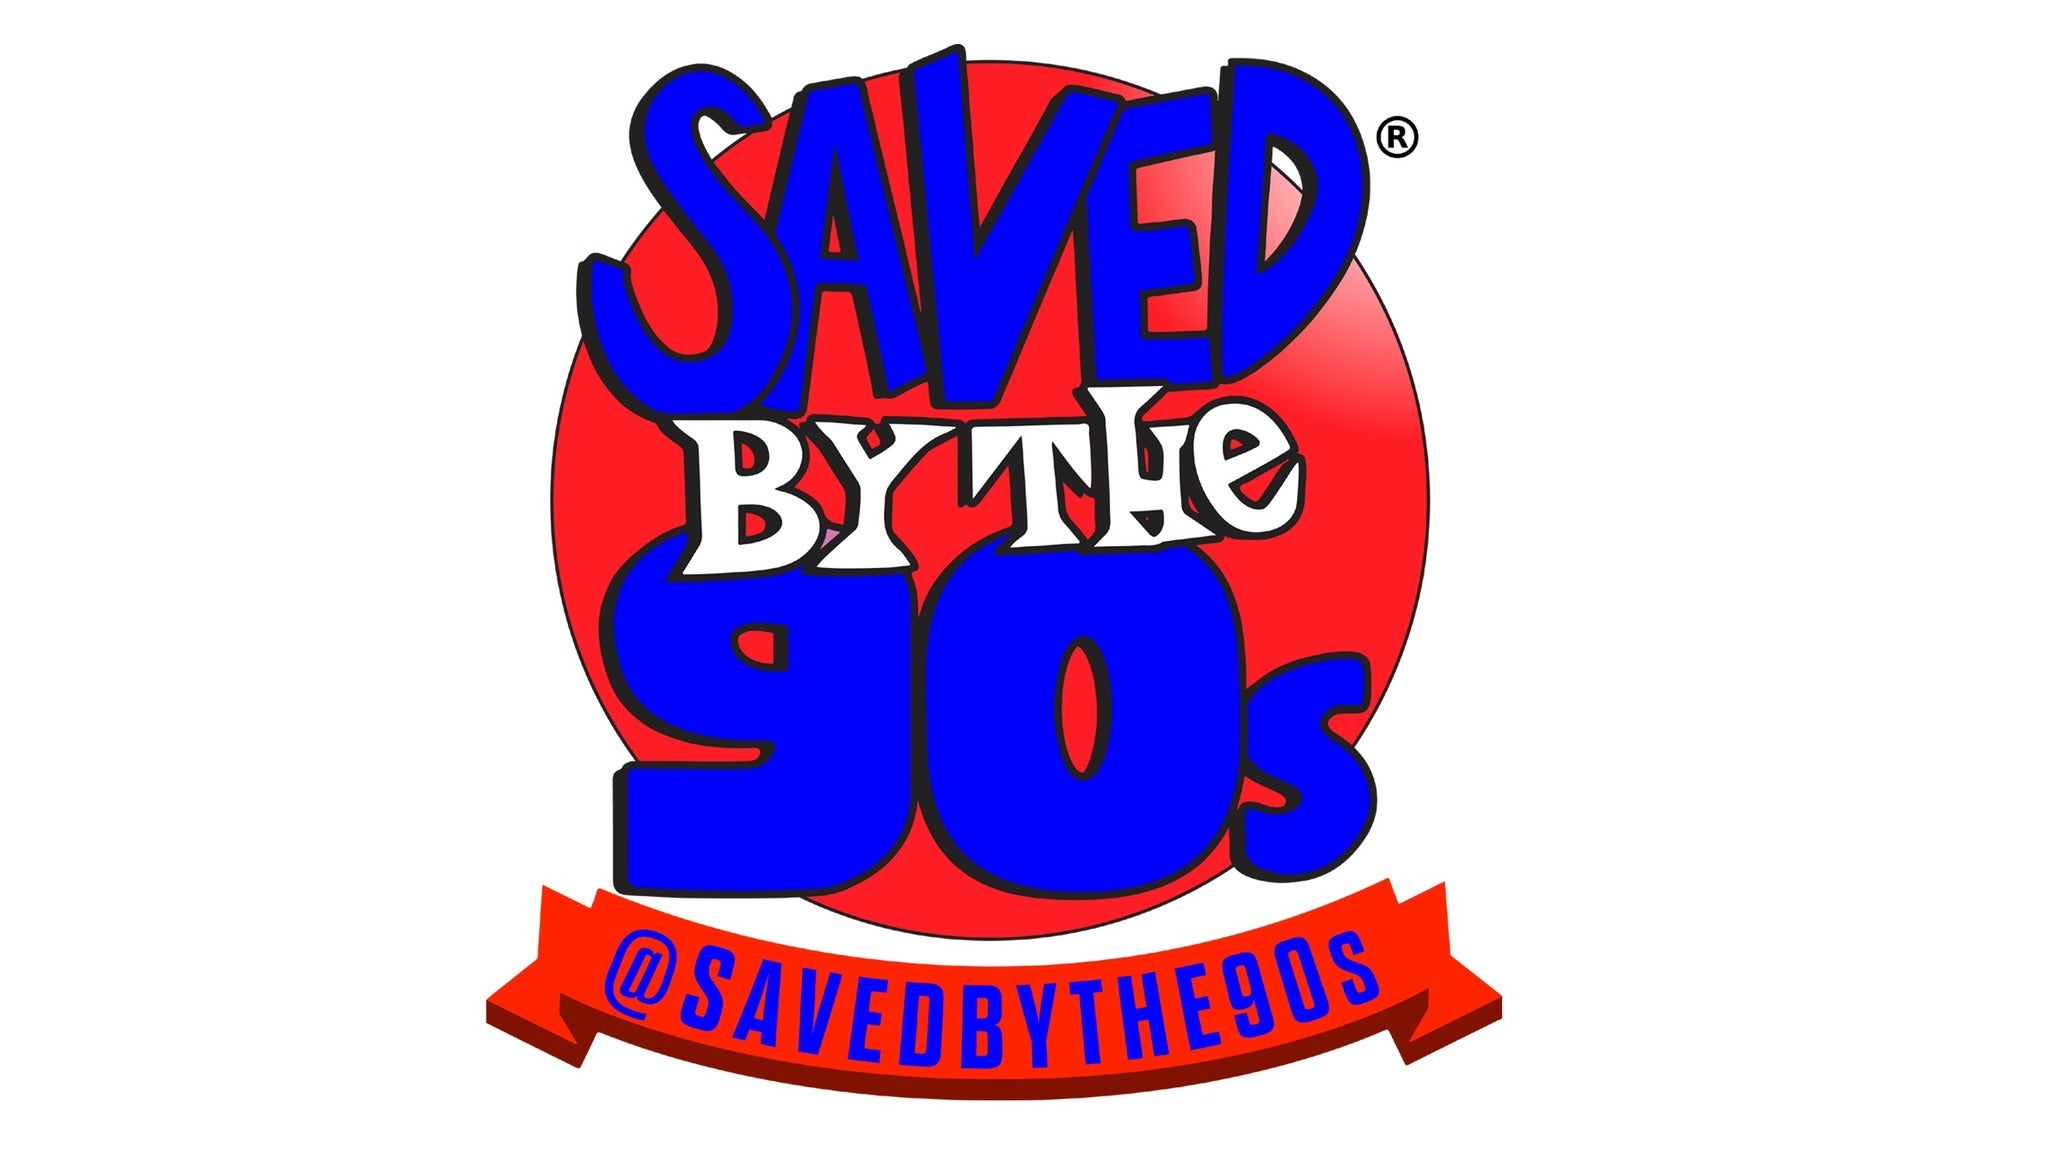 Saved By The 90's at Revolution Live